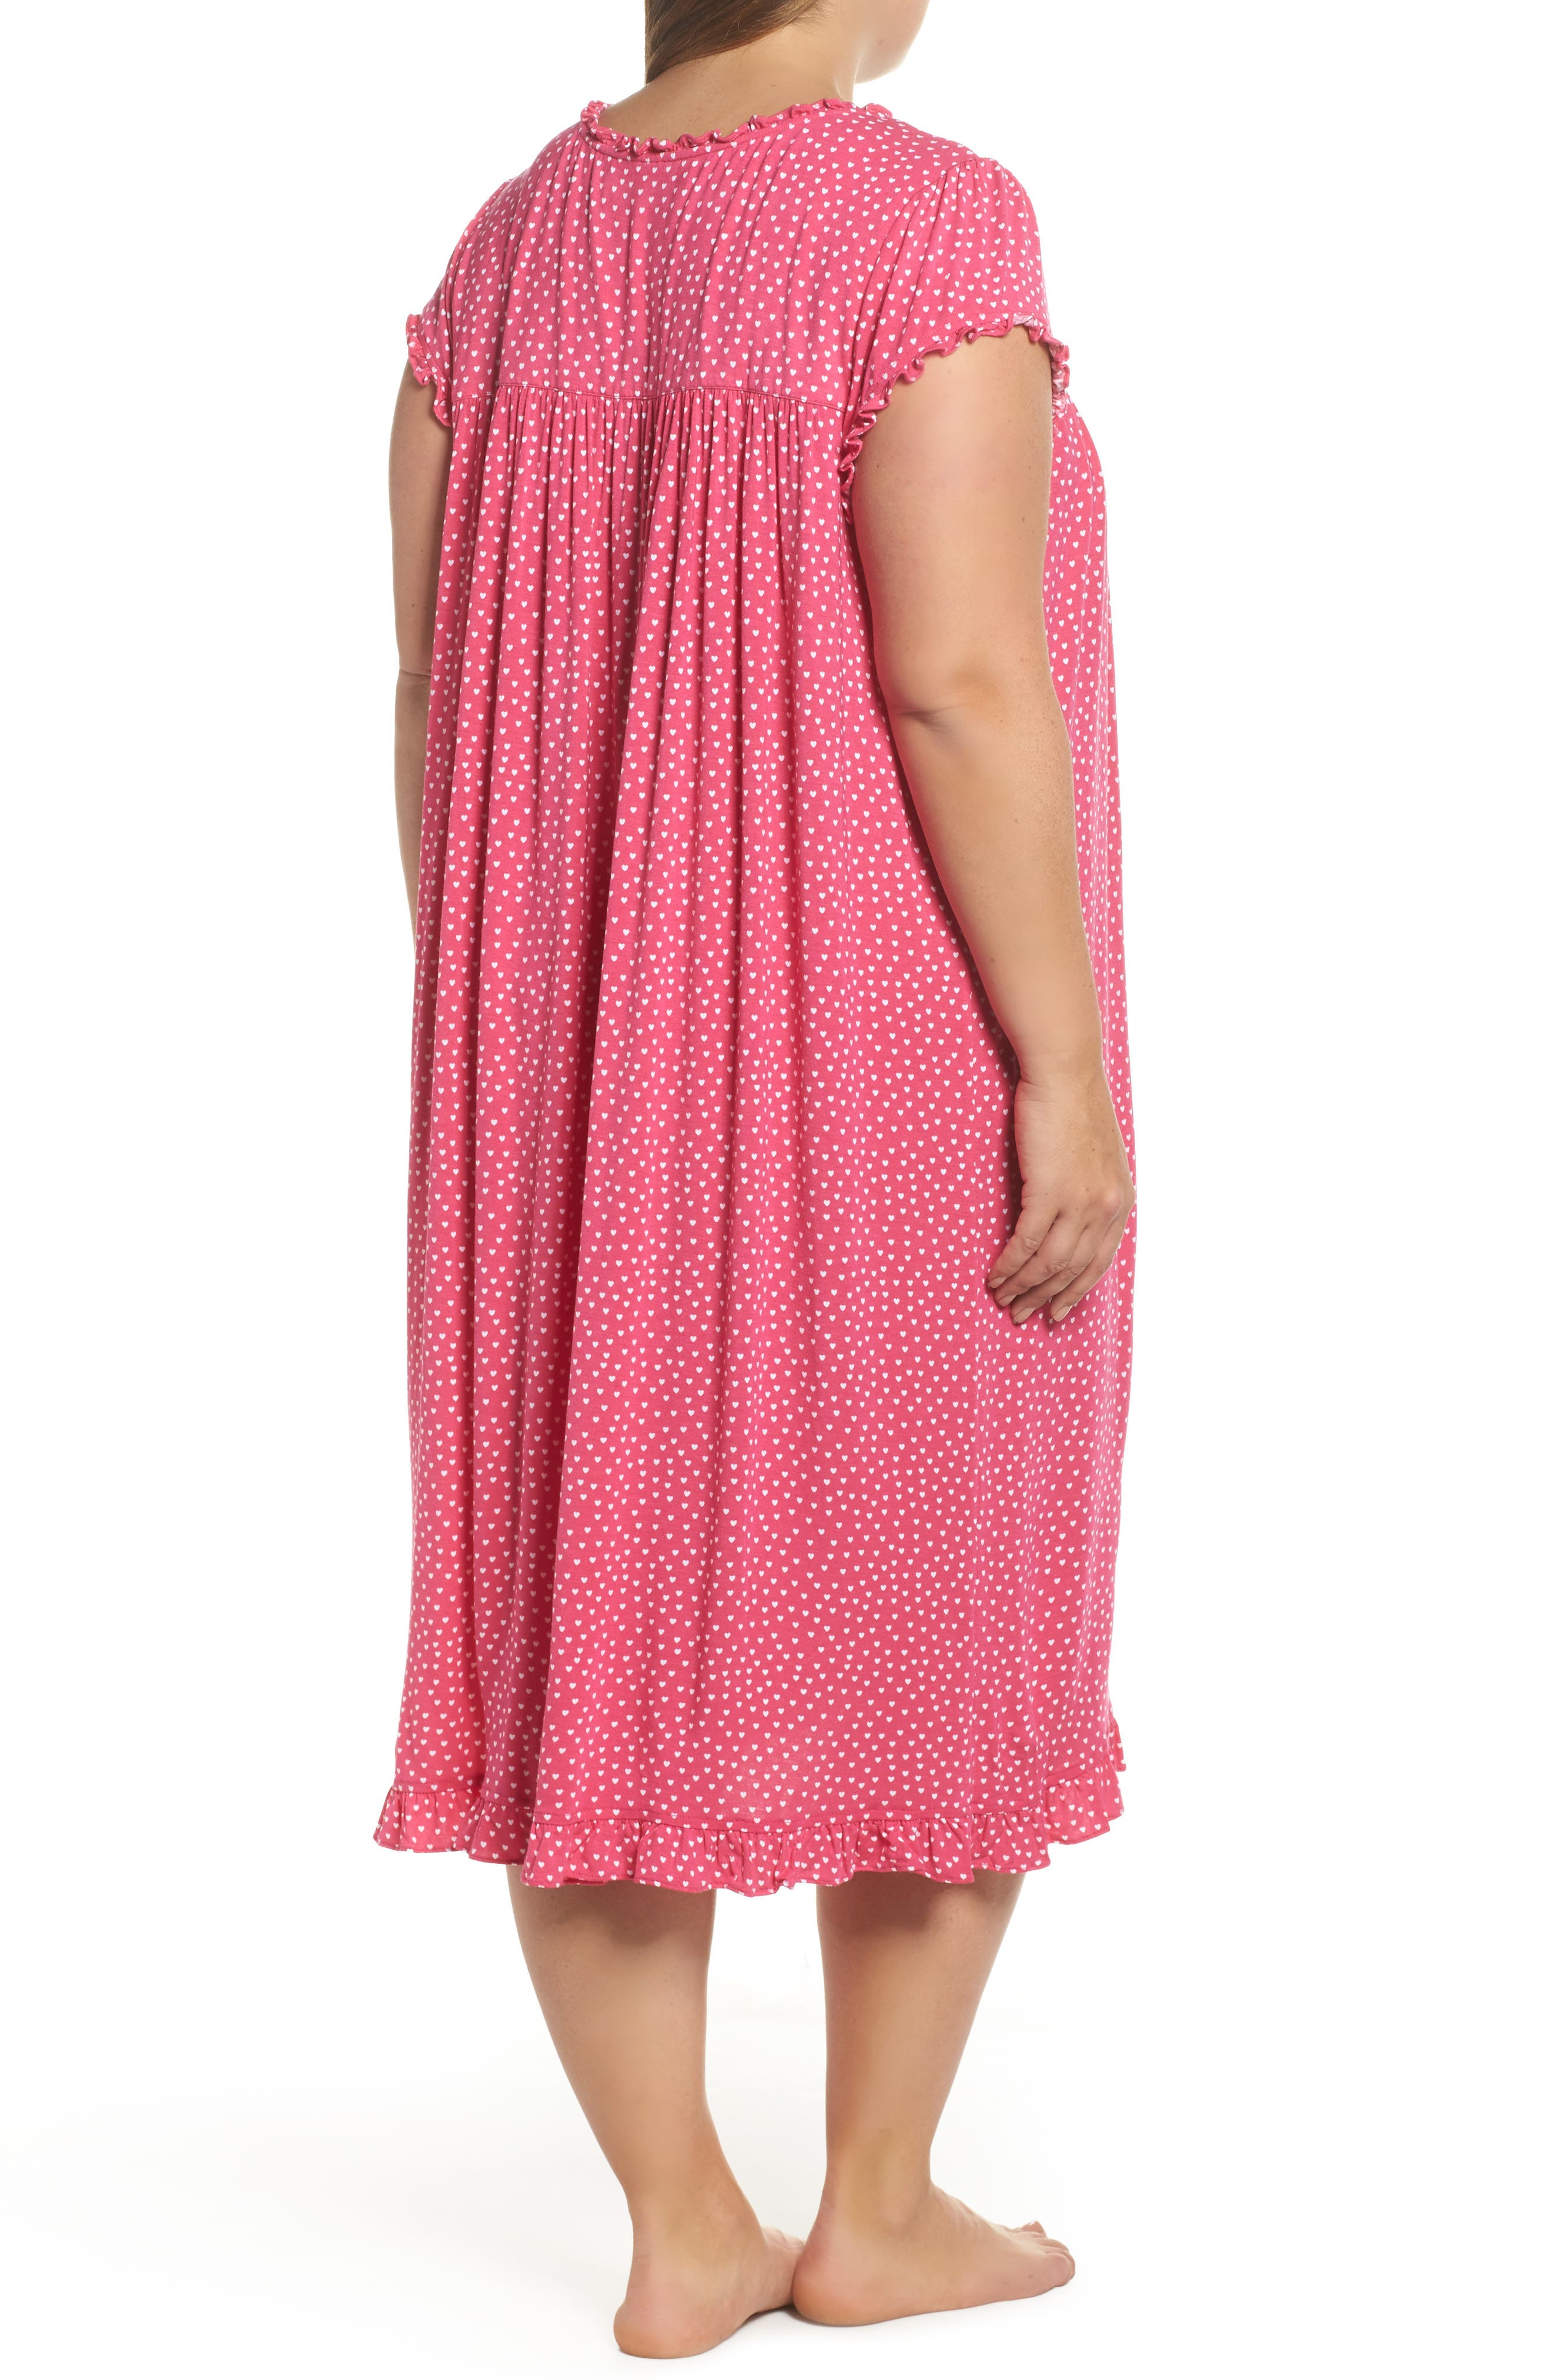 Modal Jersey Nightgown,                             Alternate thumbnail 2, color,                             Peony White Hearts